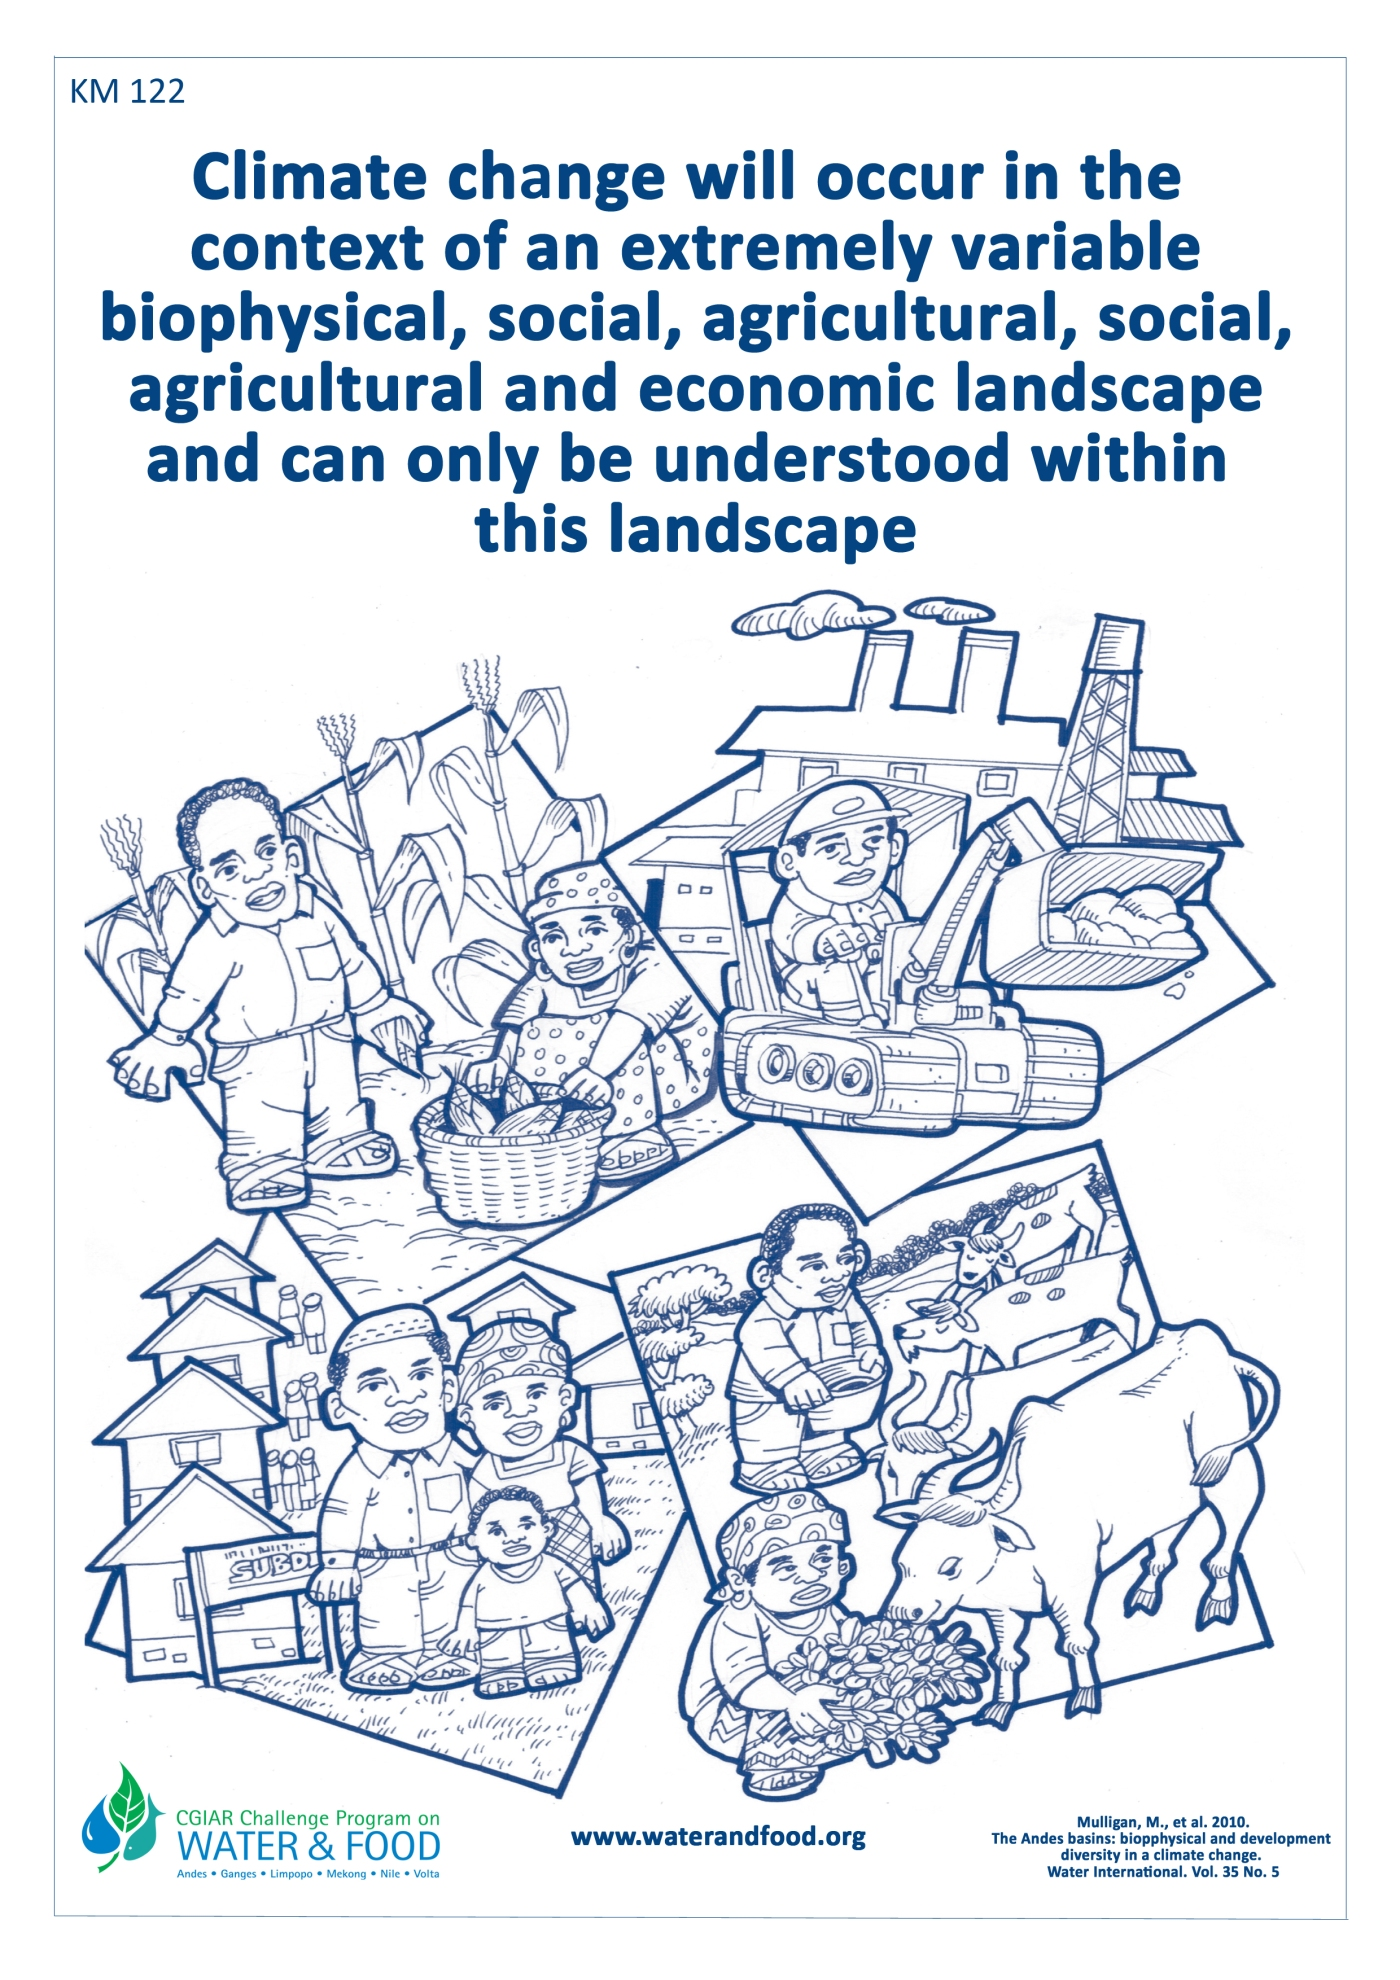 CGIAR Challenge Program on Water and Food Poster Shows the ...